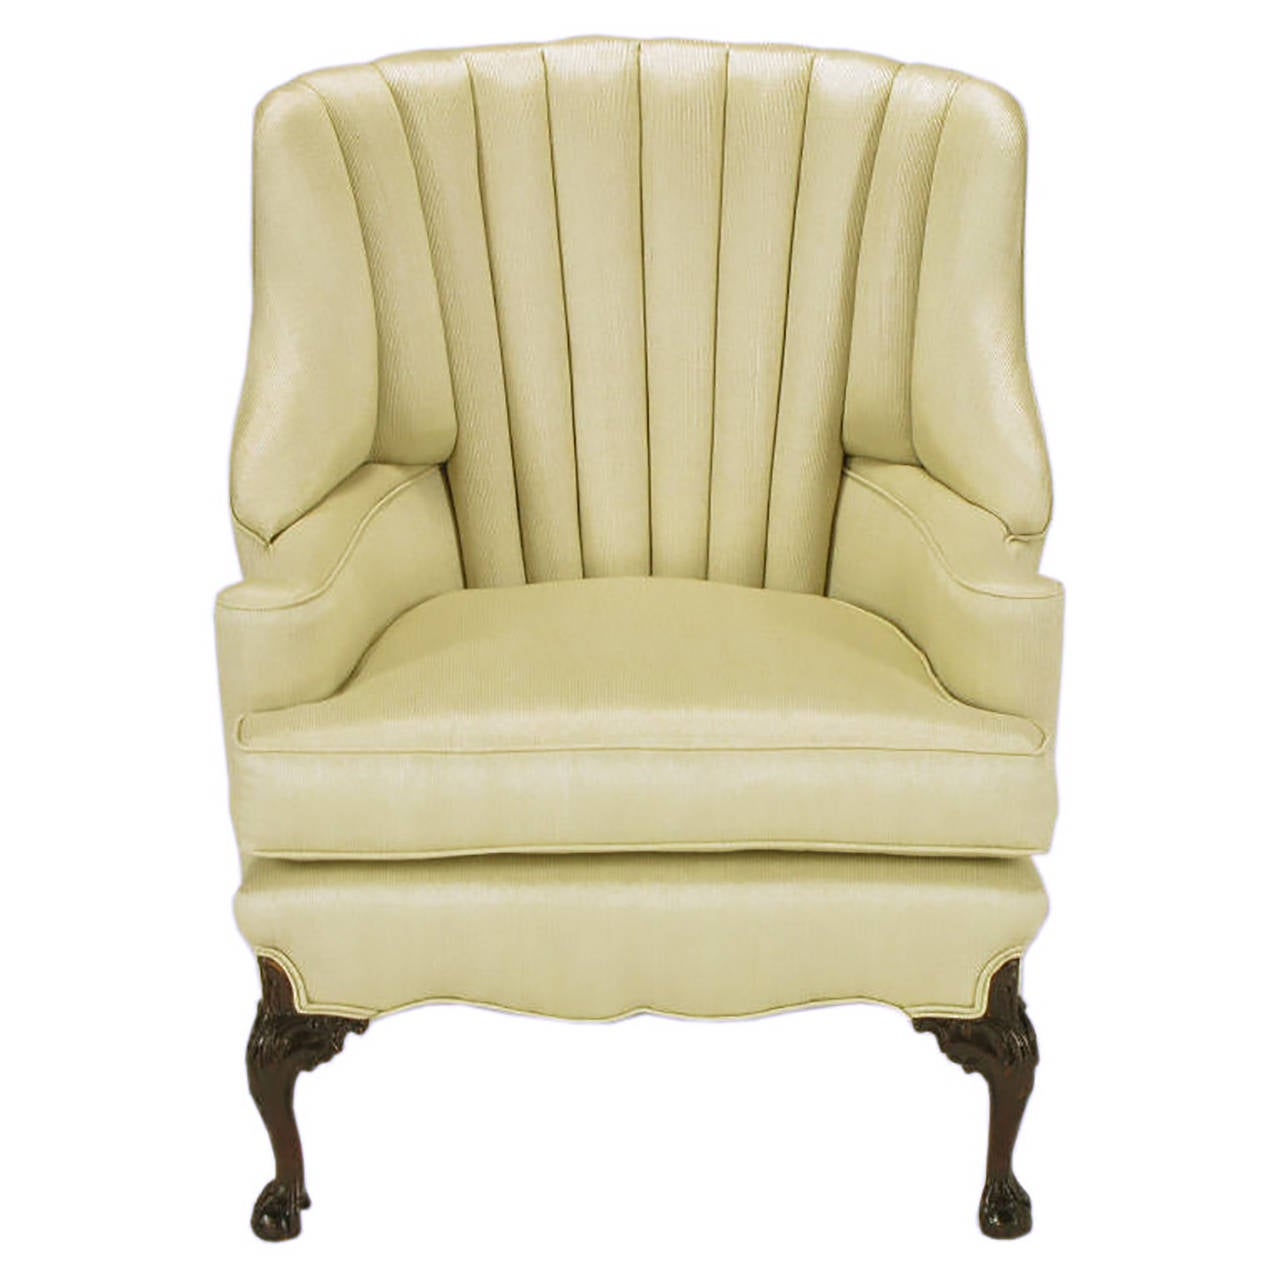 American 1930s Channel Back Claw Foot Georgian Wingback Chair For Sale